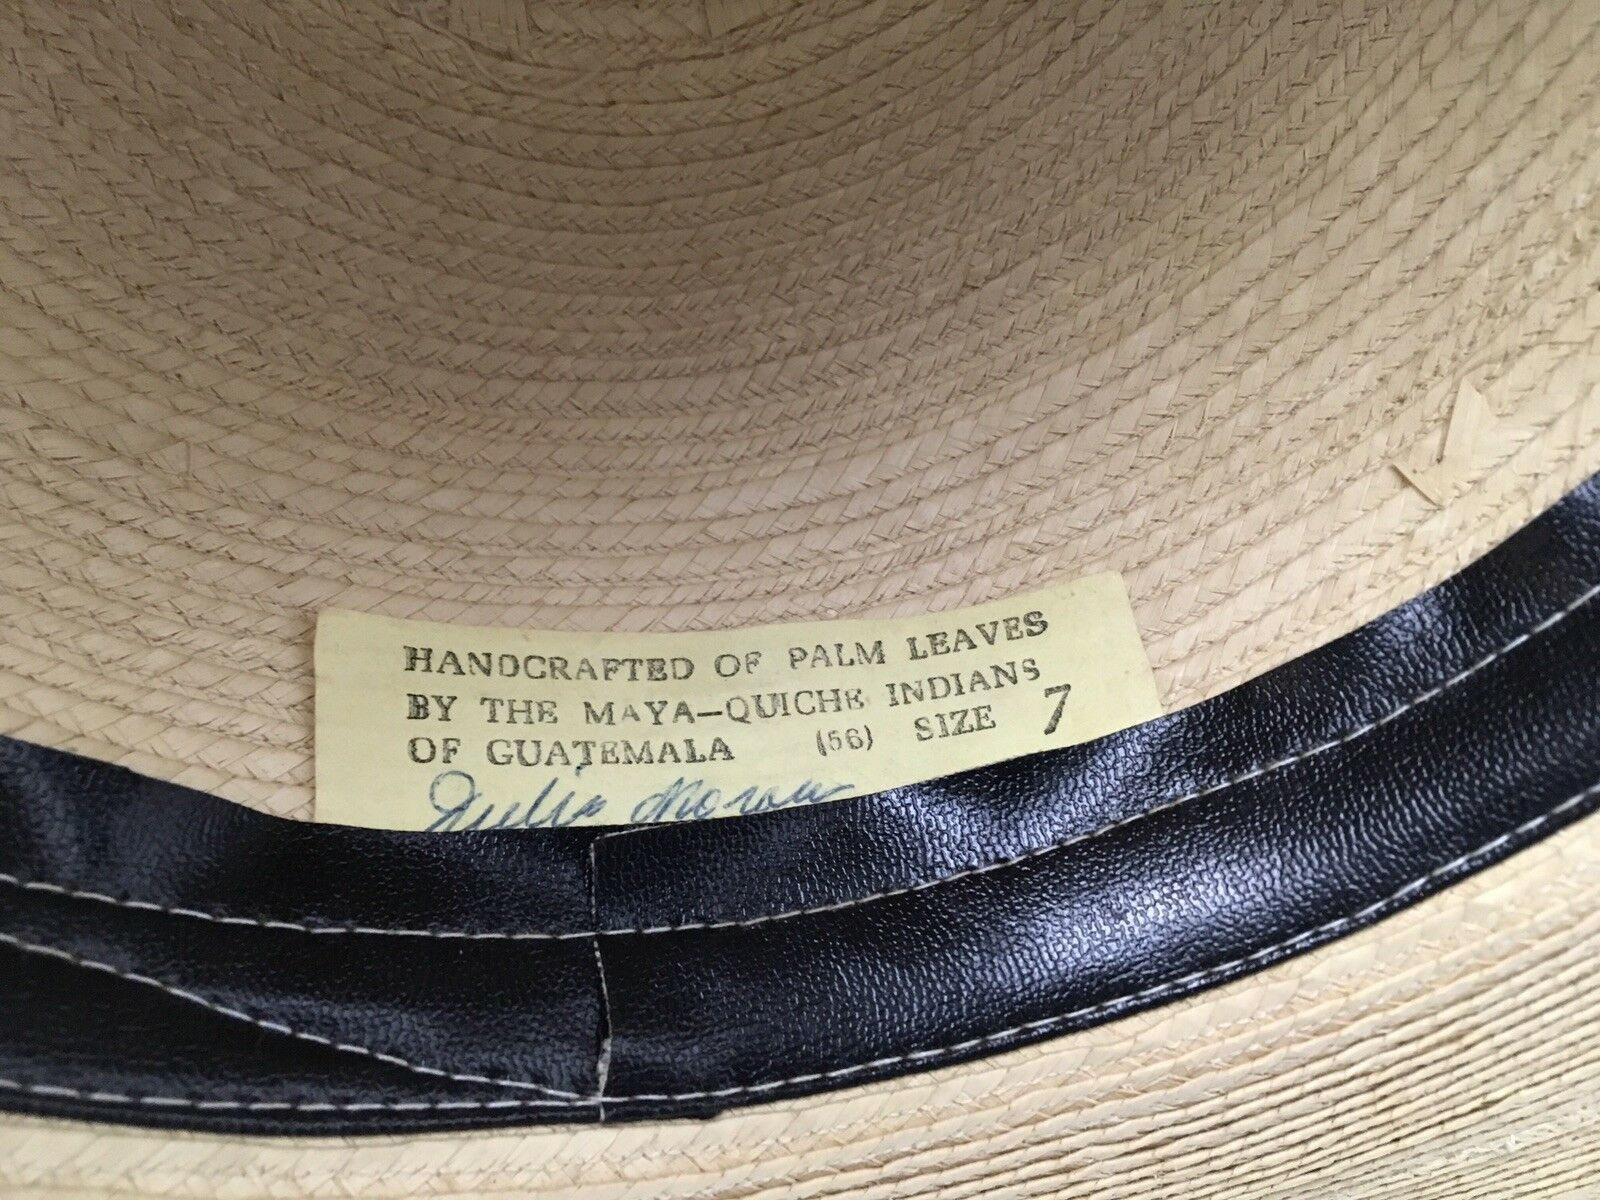 Vintage Sun Hat Palm Leaves Wide Brim Handcrafted Maya Quiche Indians 7 Signed